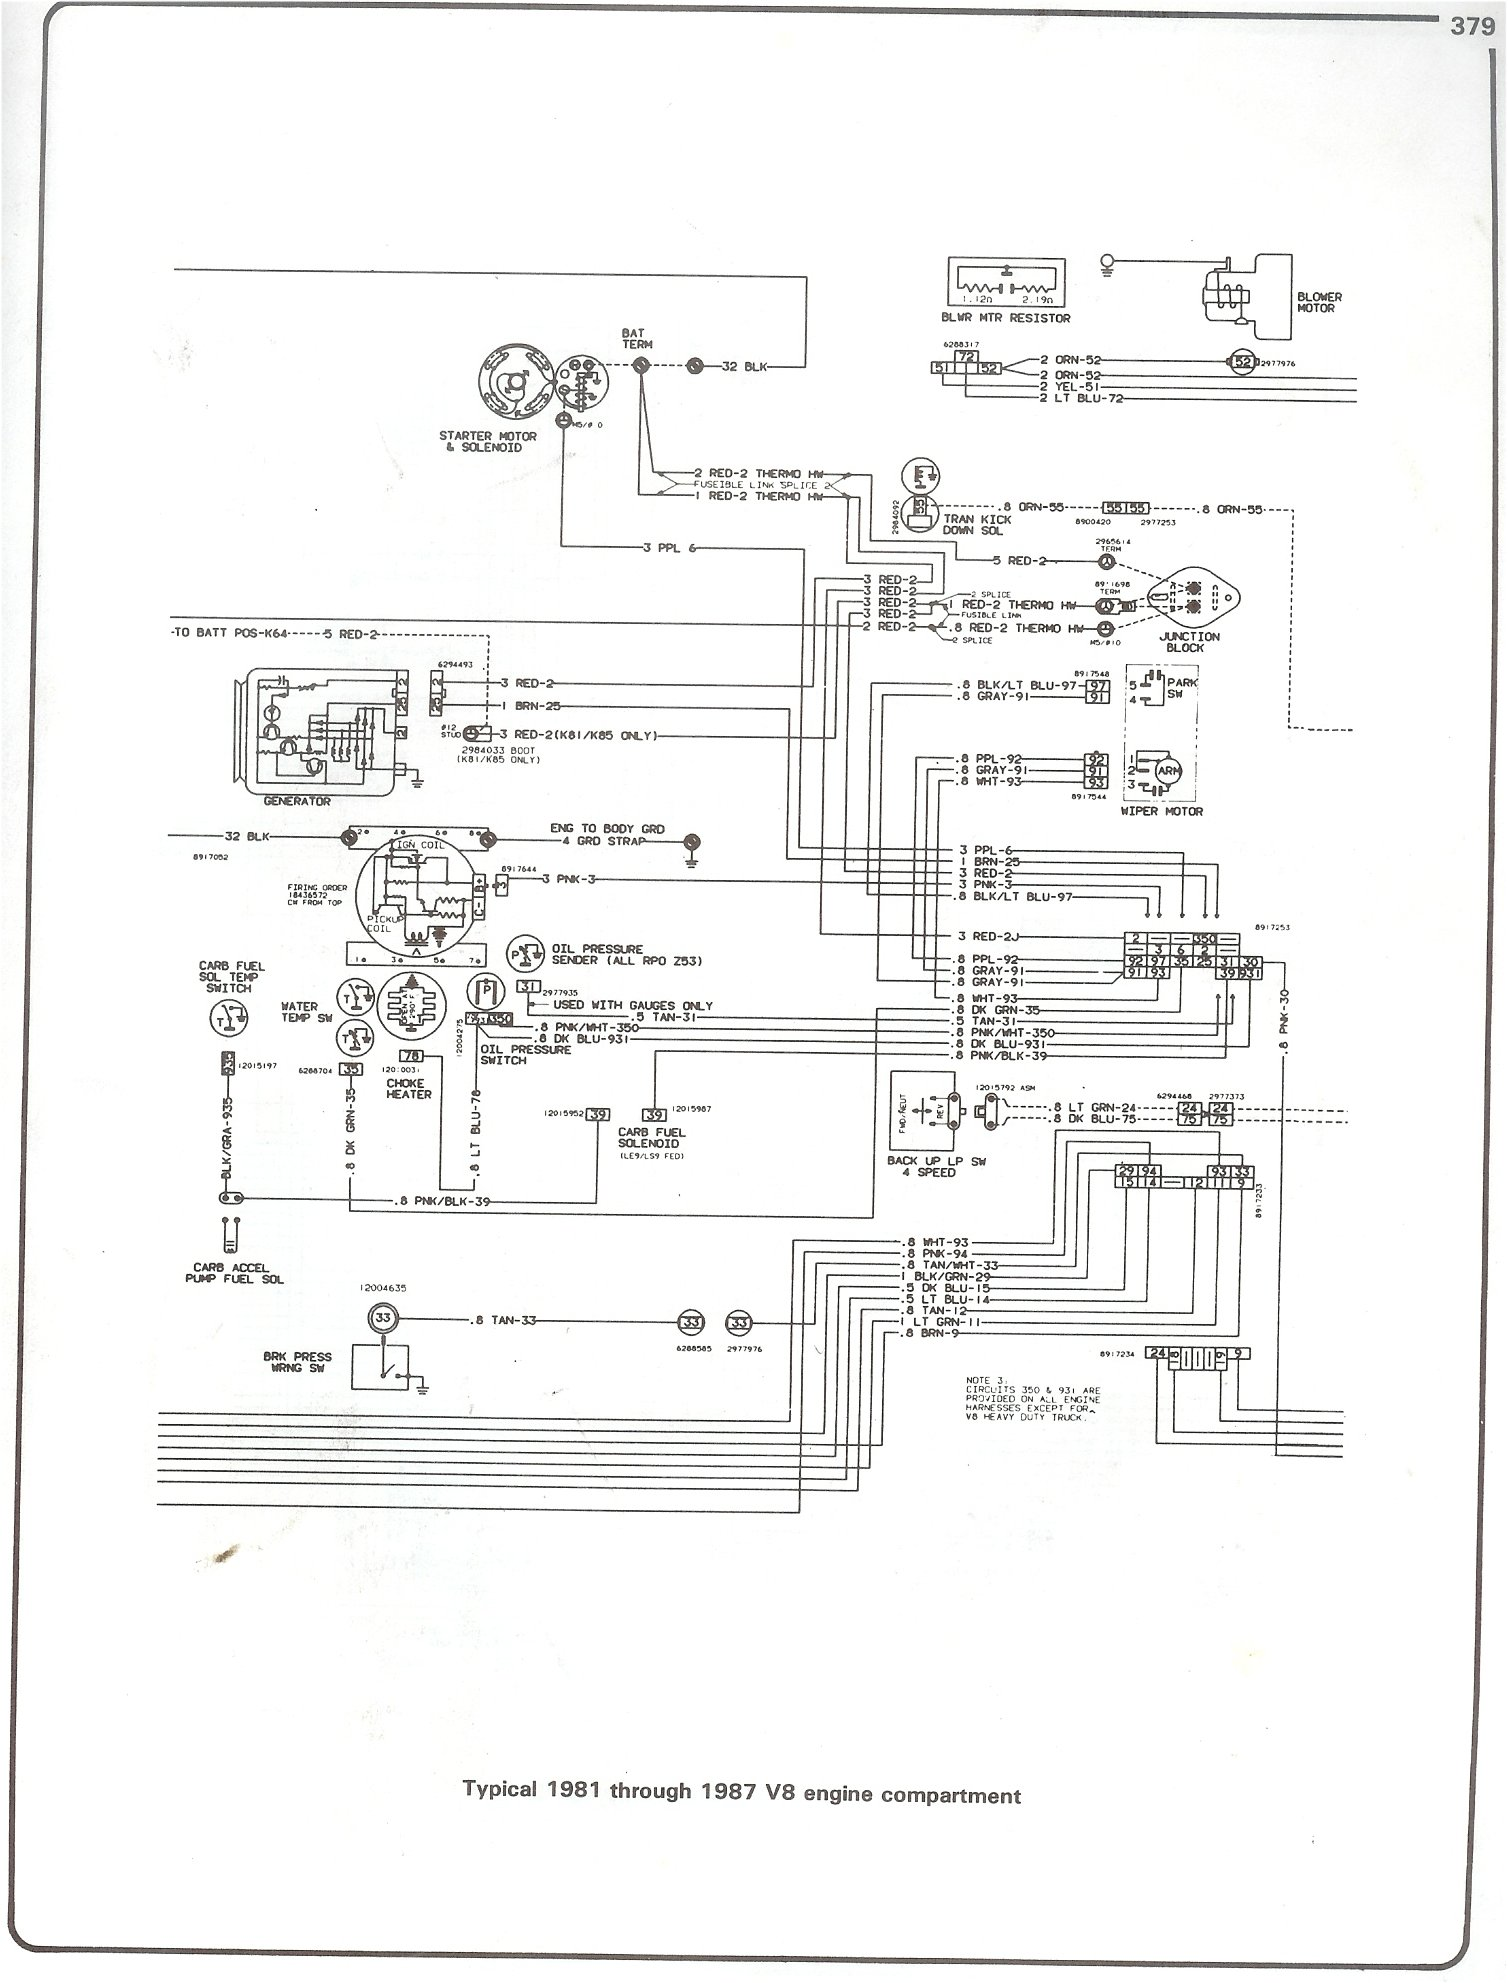 1981 chevy silverado k10 diagrams